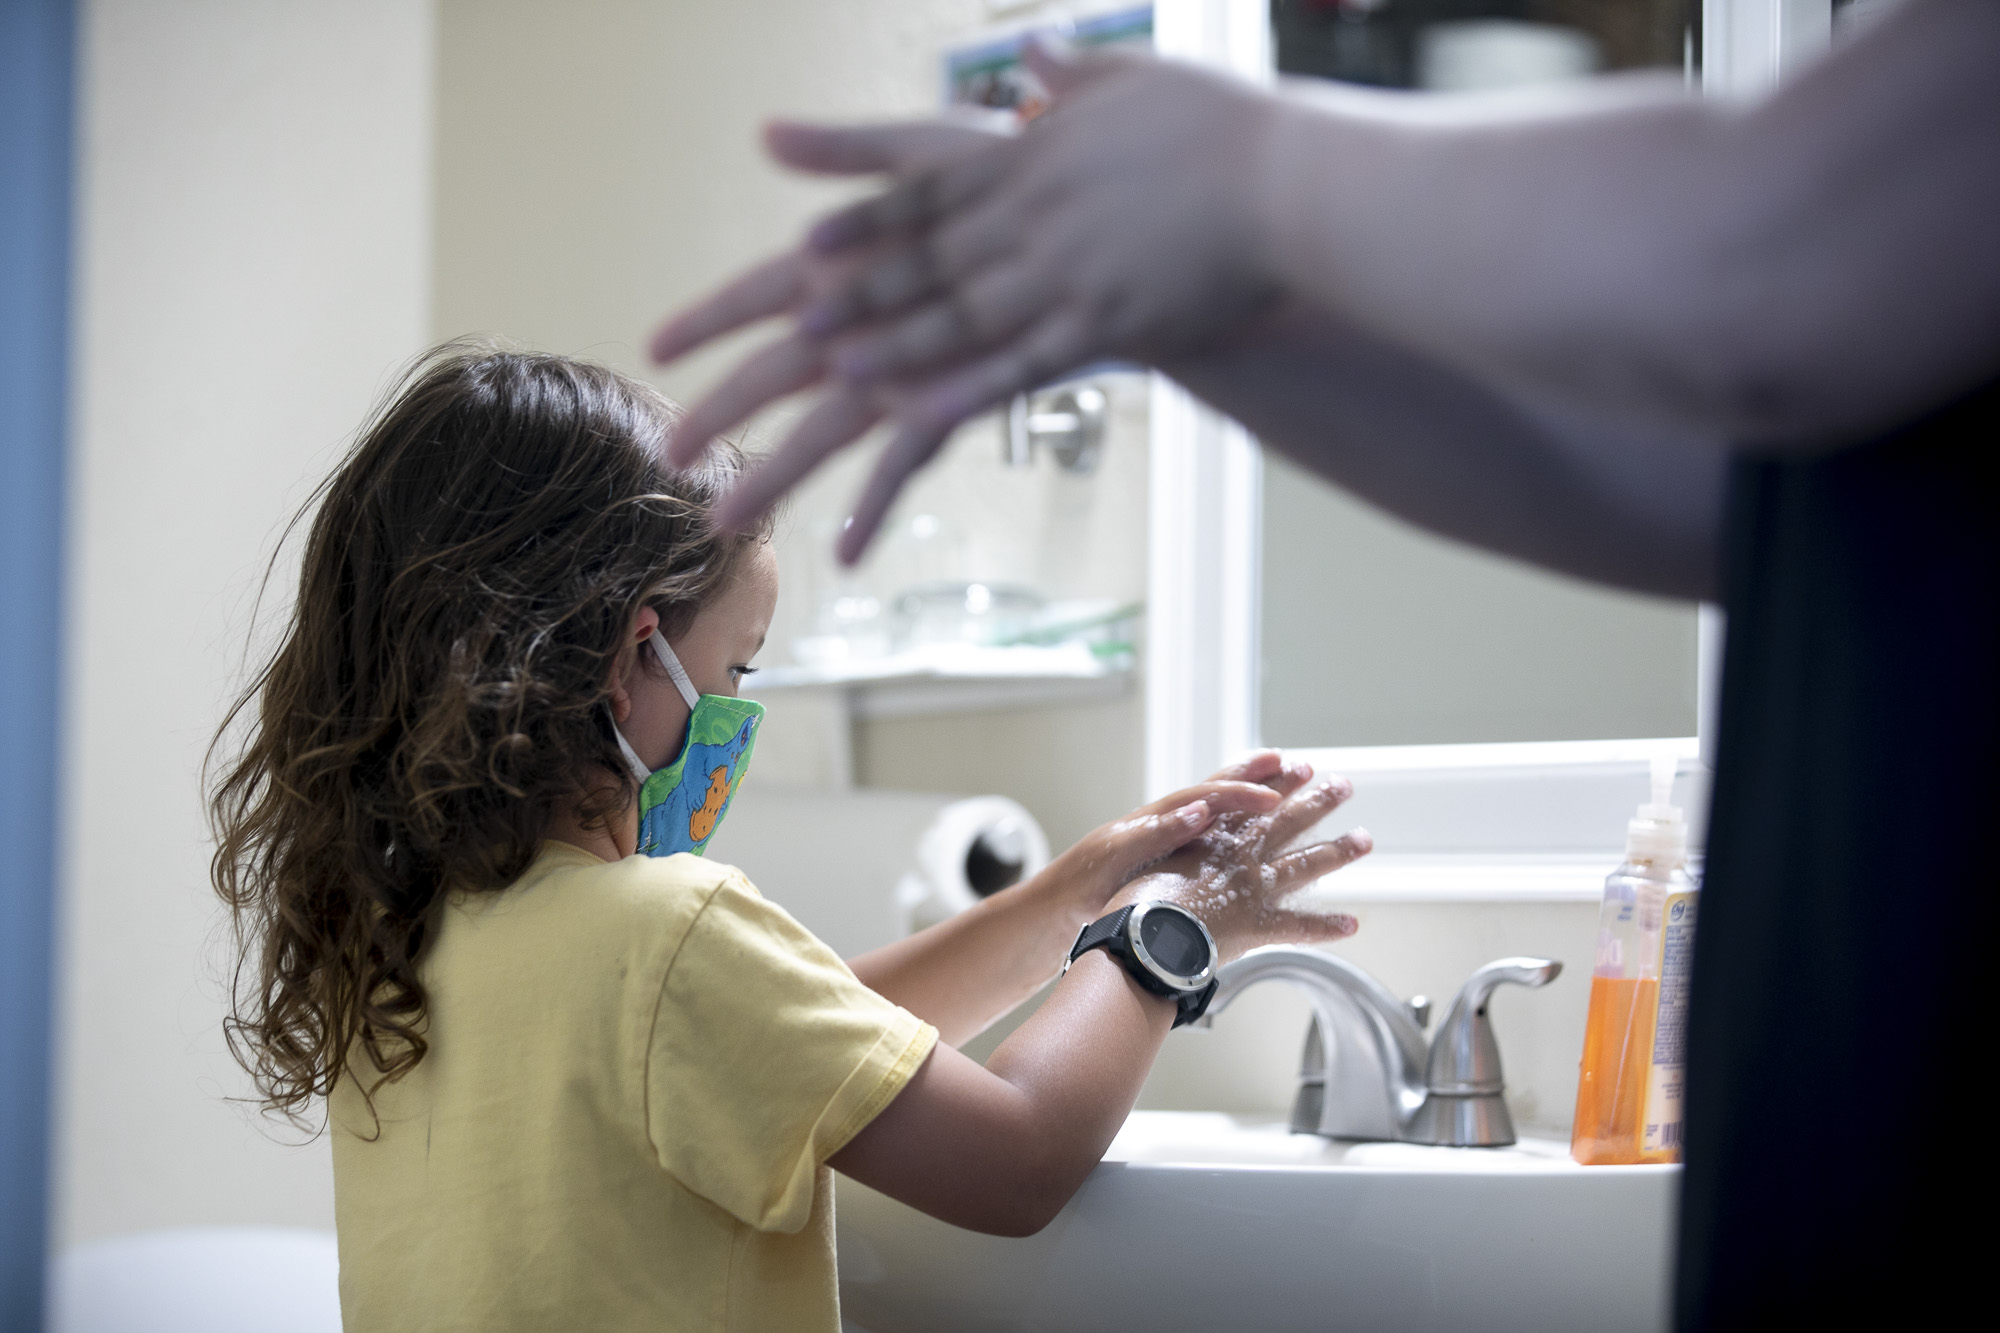 Noah, 5, washes his hands as a Heritage employee Becky Garcia acts out the motions for him to follow. Students and teachers only wear masks while doing indoor activities unless a student's parent has requested they wear them all the time. Photo by Anne Wernikoff for CalMatters